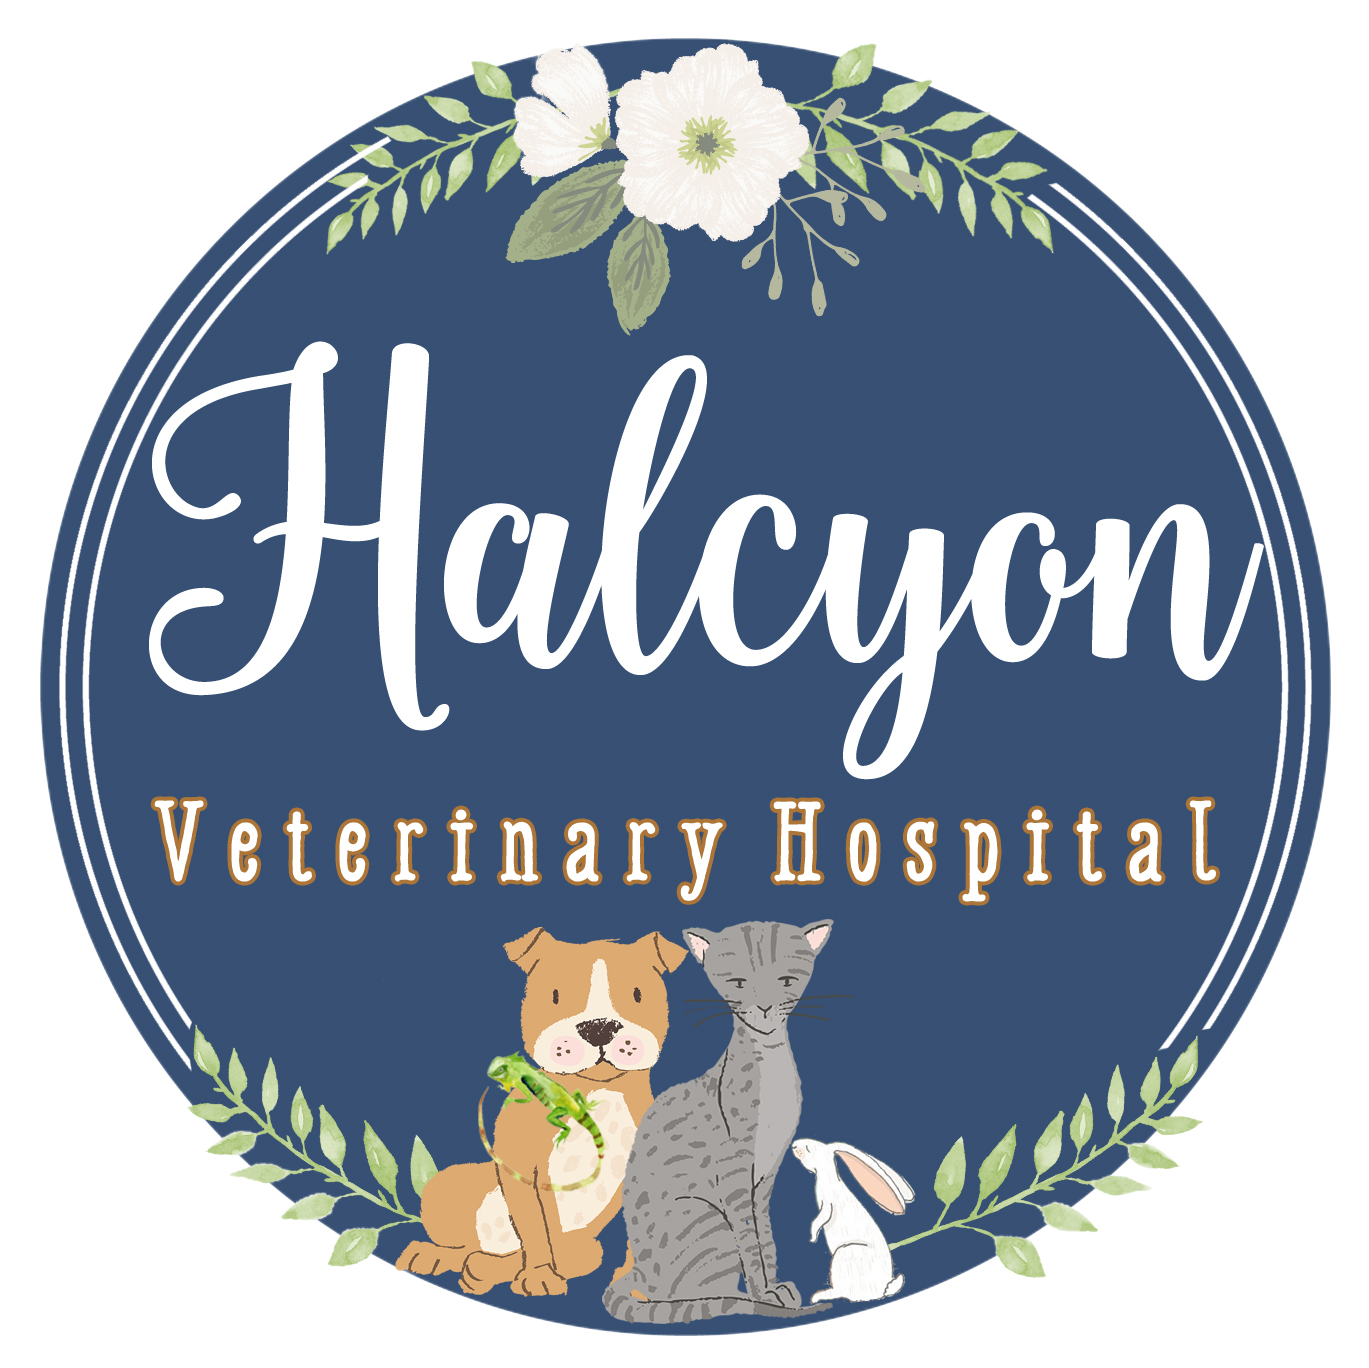 Halcyon Veterinary Hospital